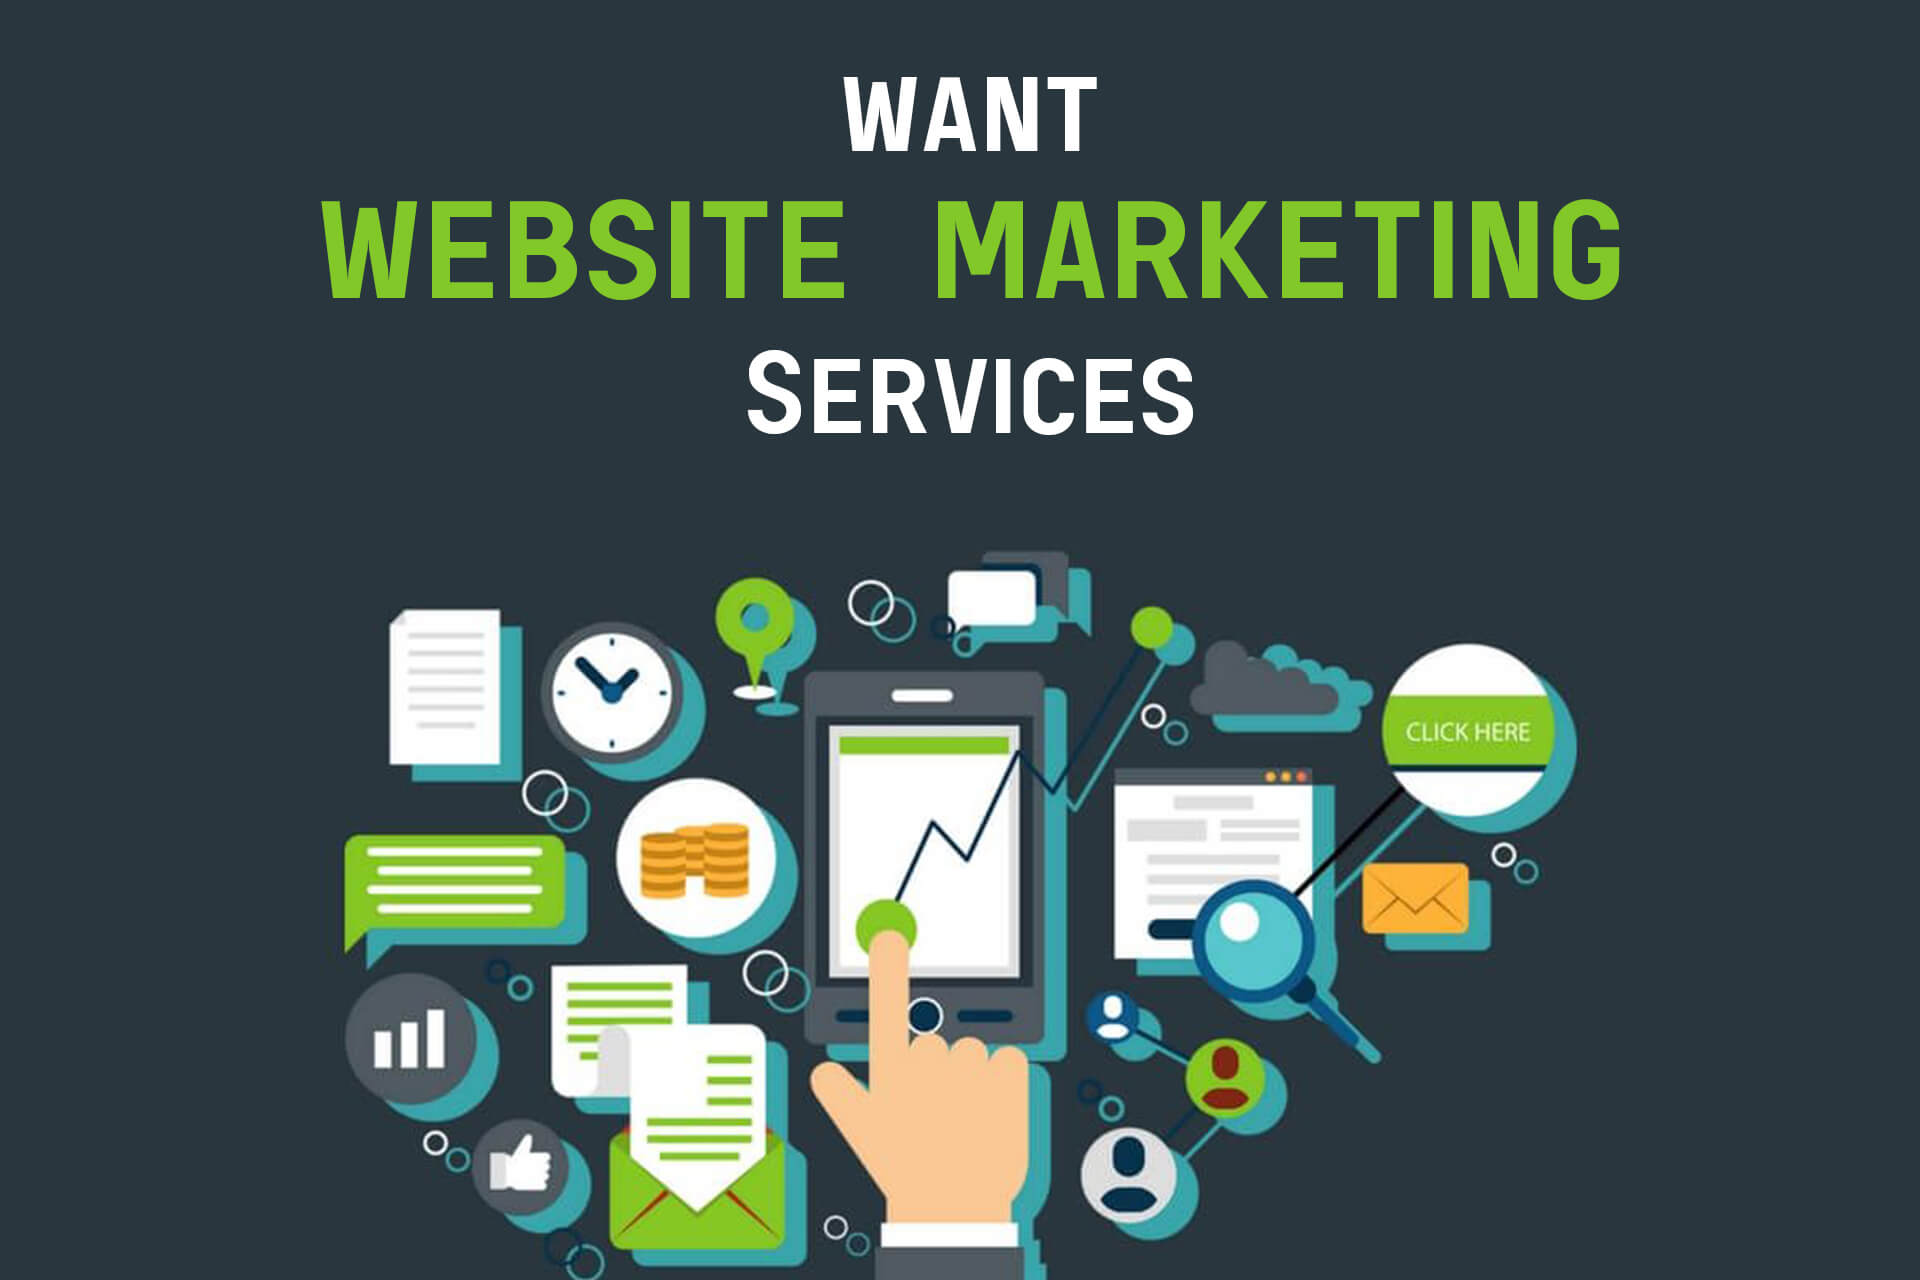 Want Website Marketing Services?